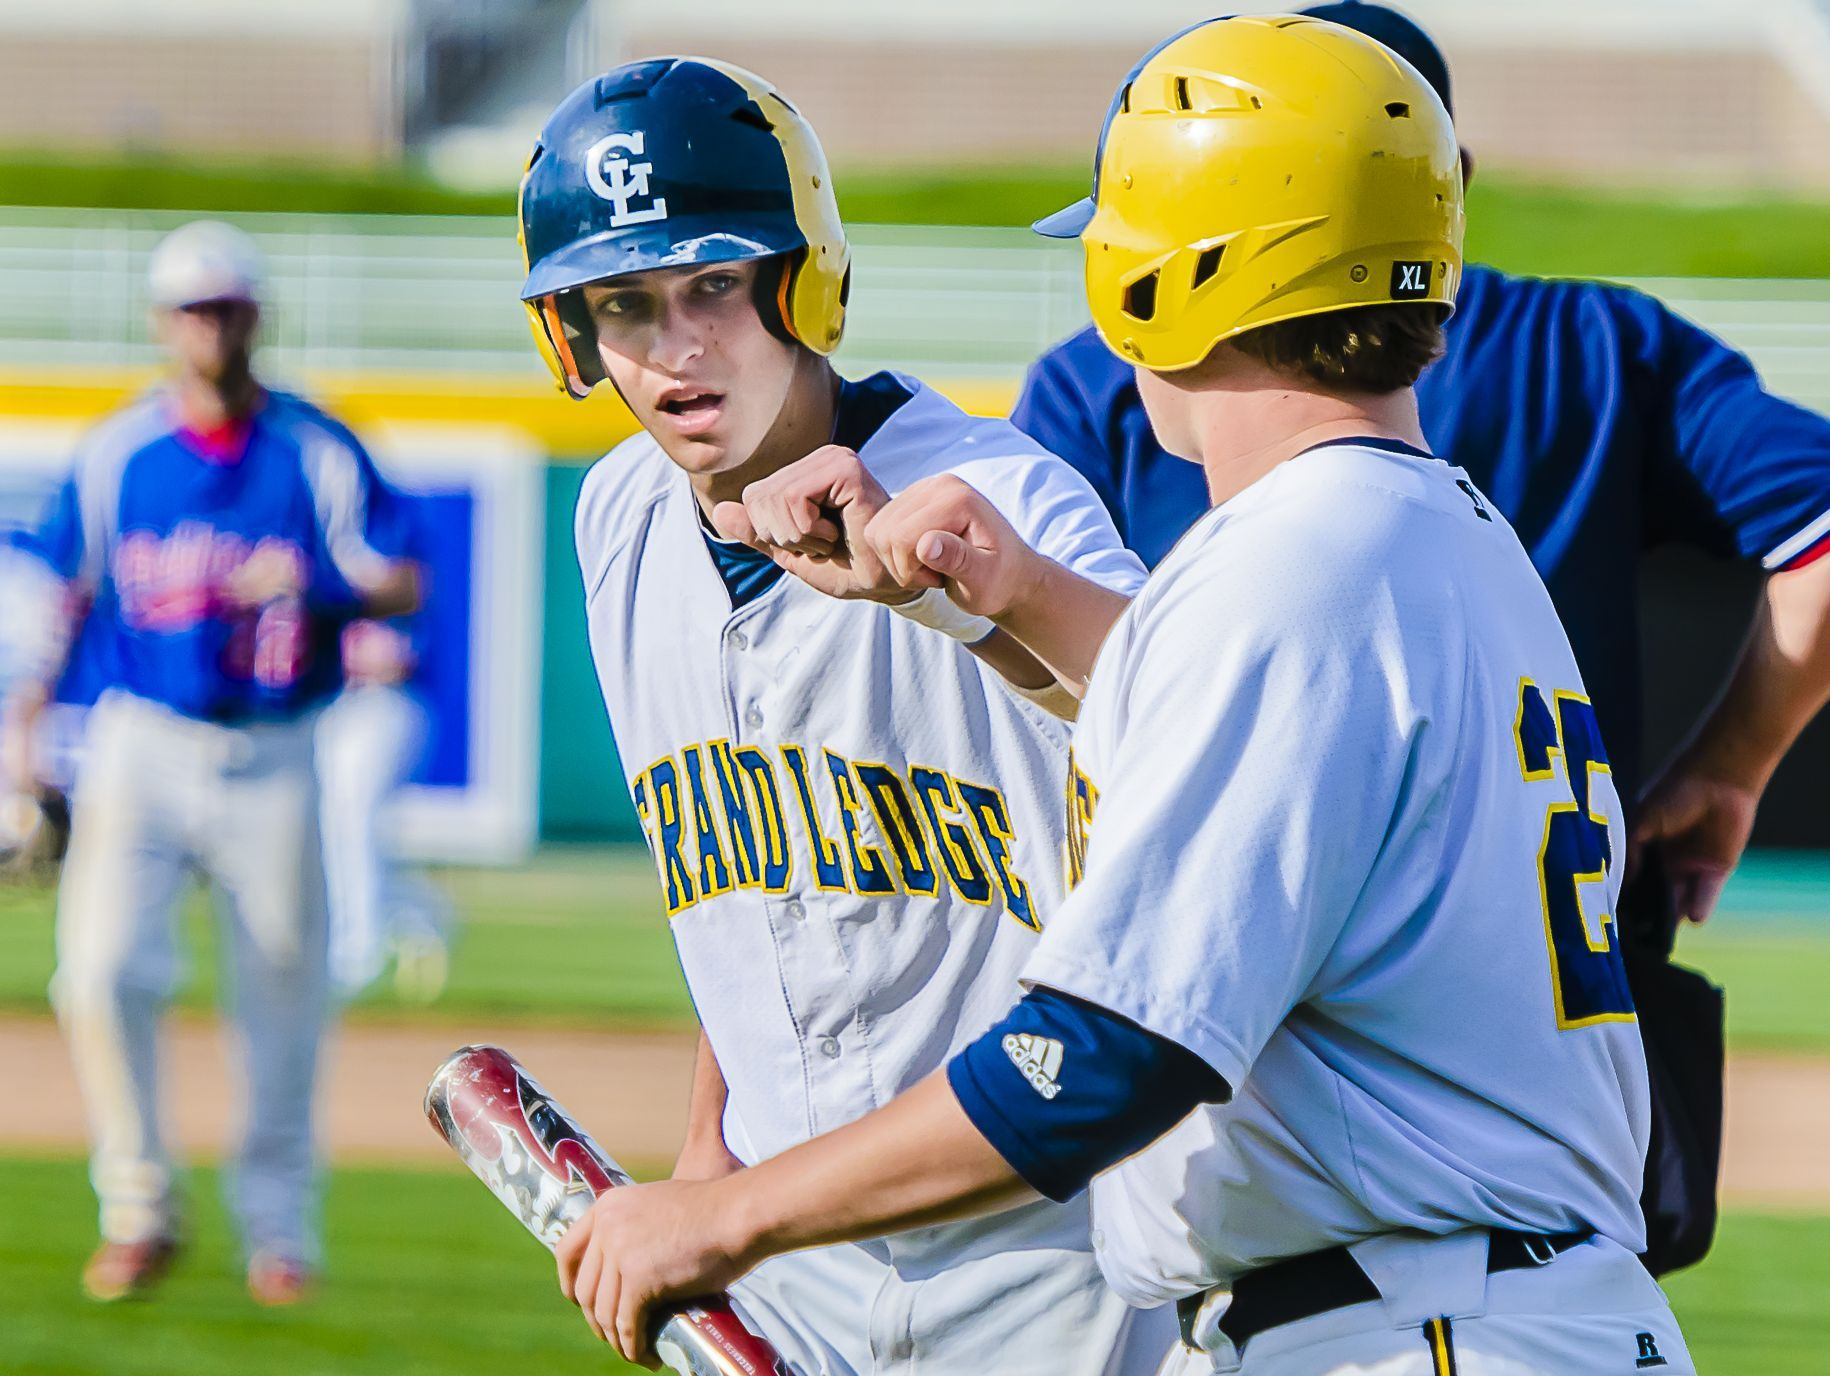 Luke LaLumia ,left, is one of the top returning players for Grand Ledge, which is the defending Diamond Classic champion.